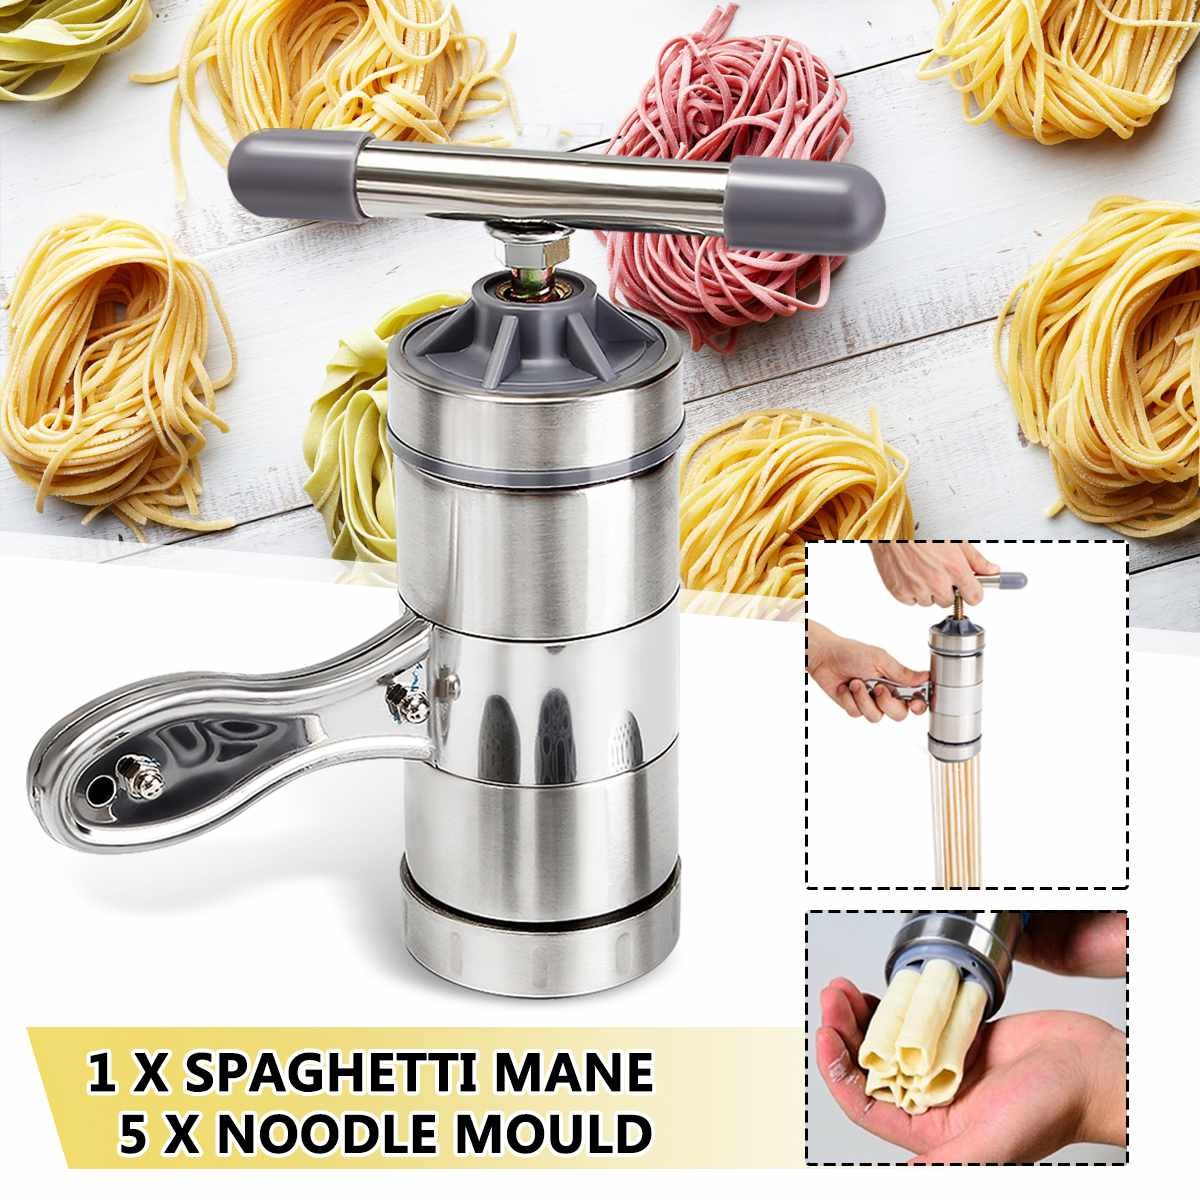 Stainless Steel Manual Pasta Machine Noodle Maker Pasta Spaghetti Press Machine Household Pressing Machine With 5 Pressing Mould image